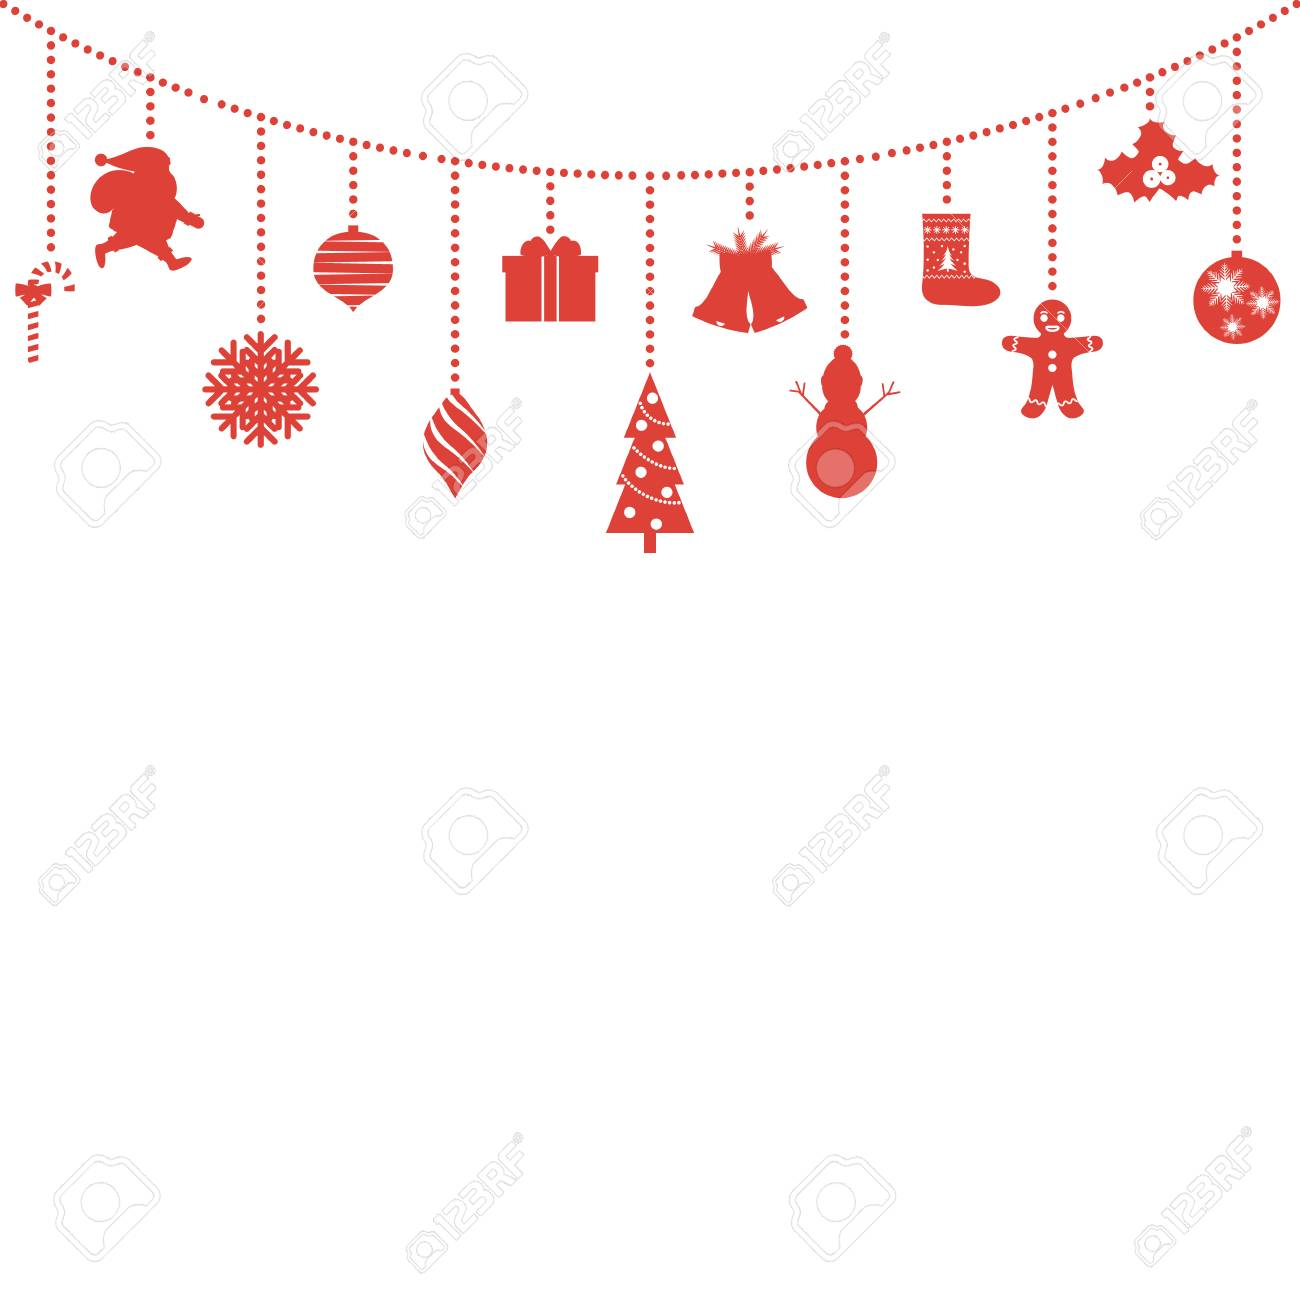 Hanging Christmas Ornaments Silhouette.Christmas And New Year S Symbols Hanging From Above Silhouettes